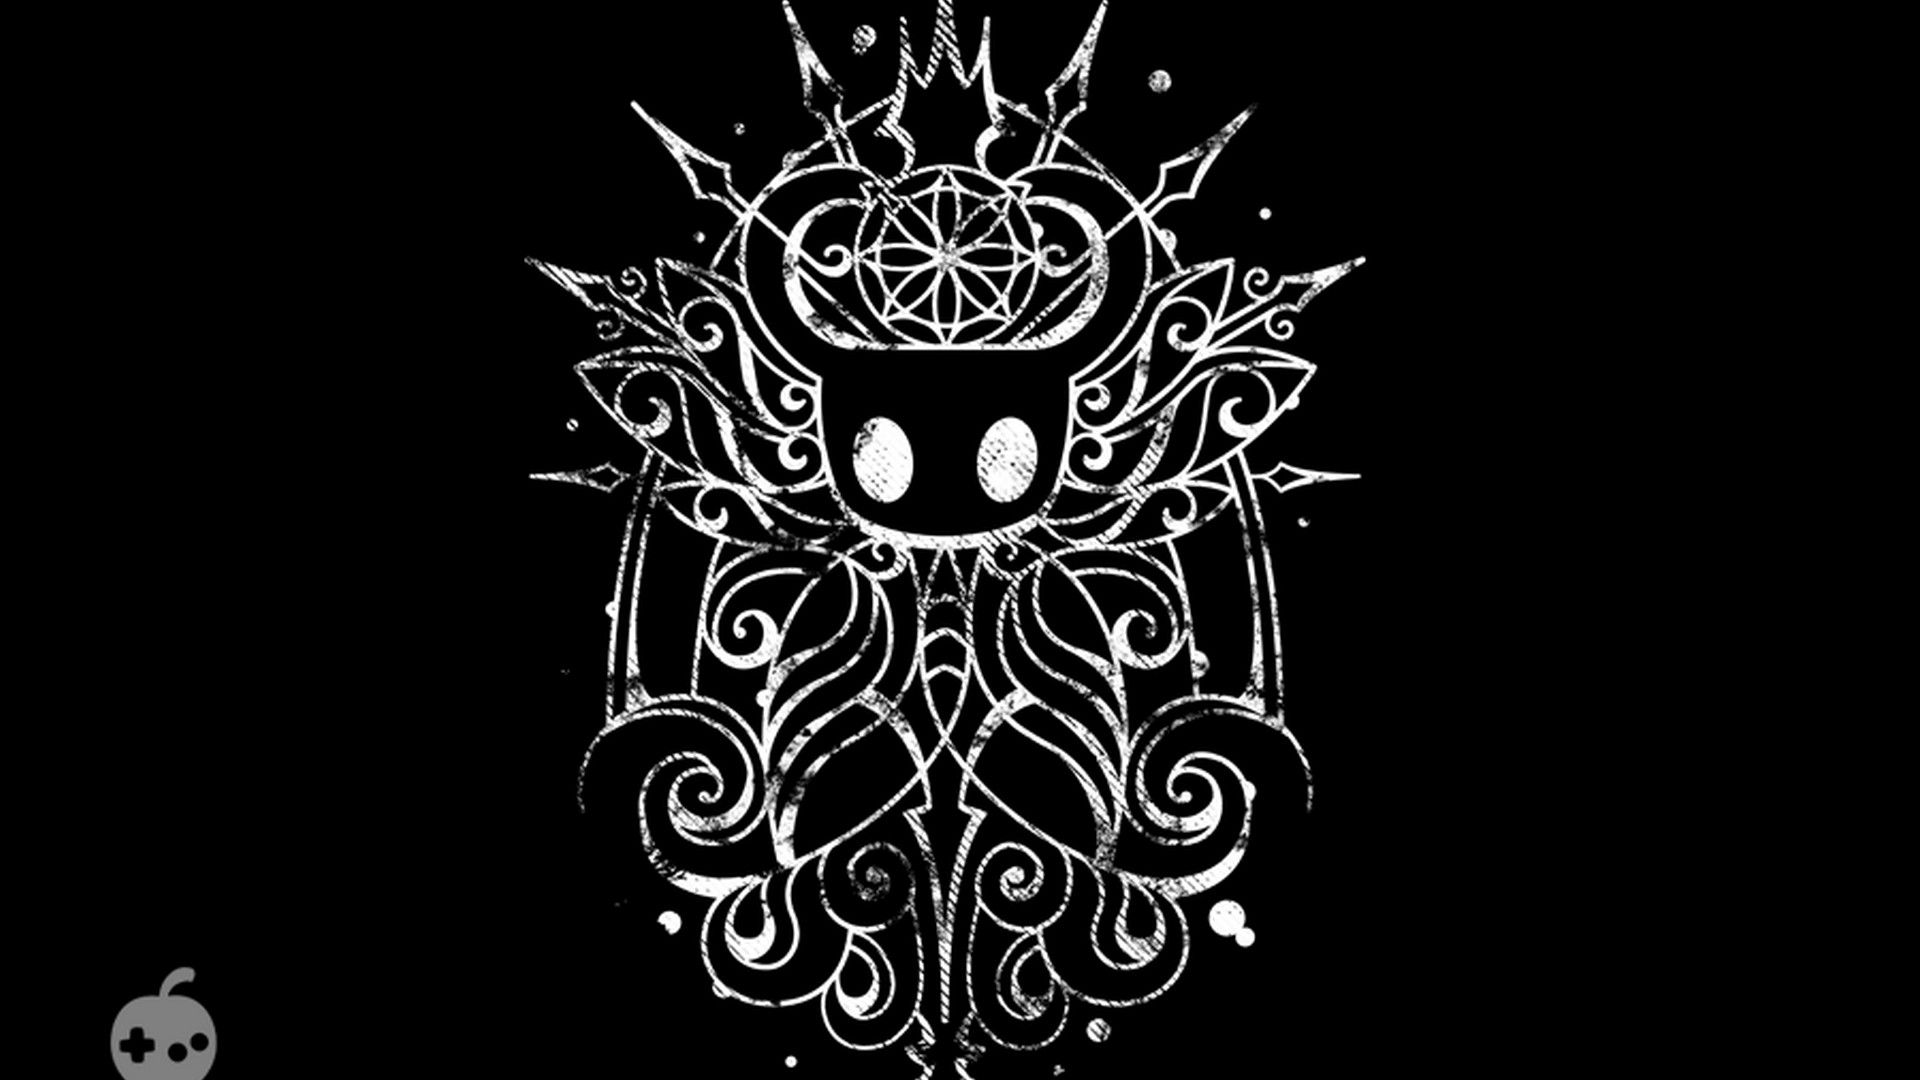 Hollow Knight Hd Wallpaper 2020 Live Wallpaper Hd In 2020 Hollow Art Knight Tattoo Knight